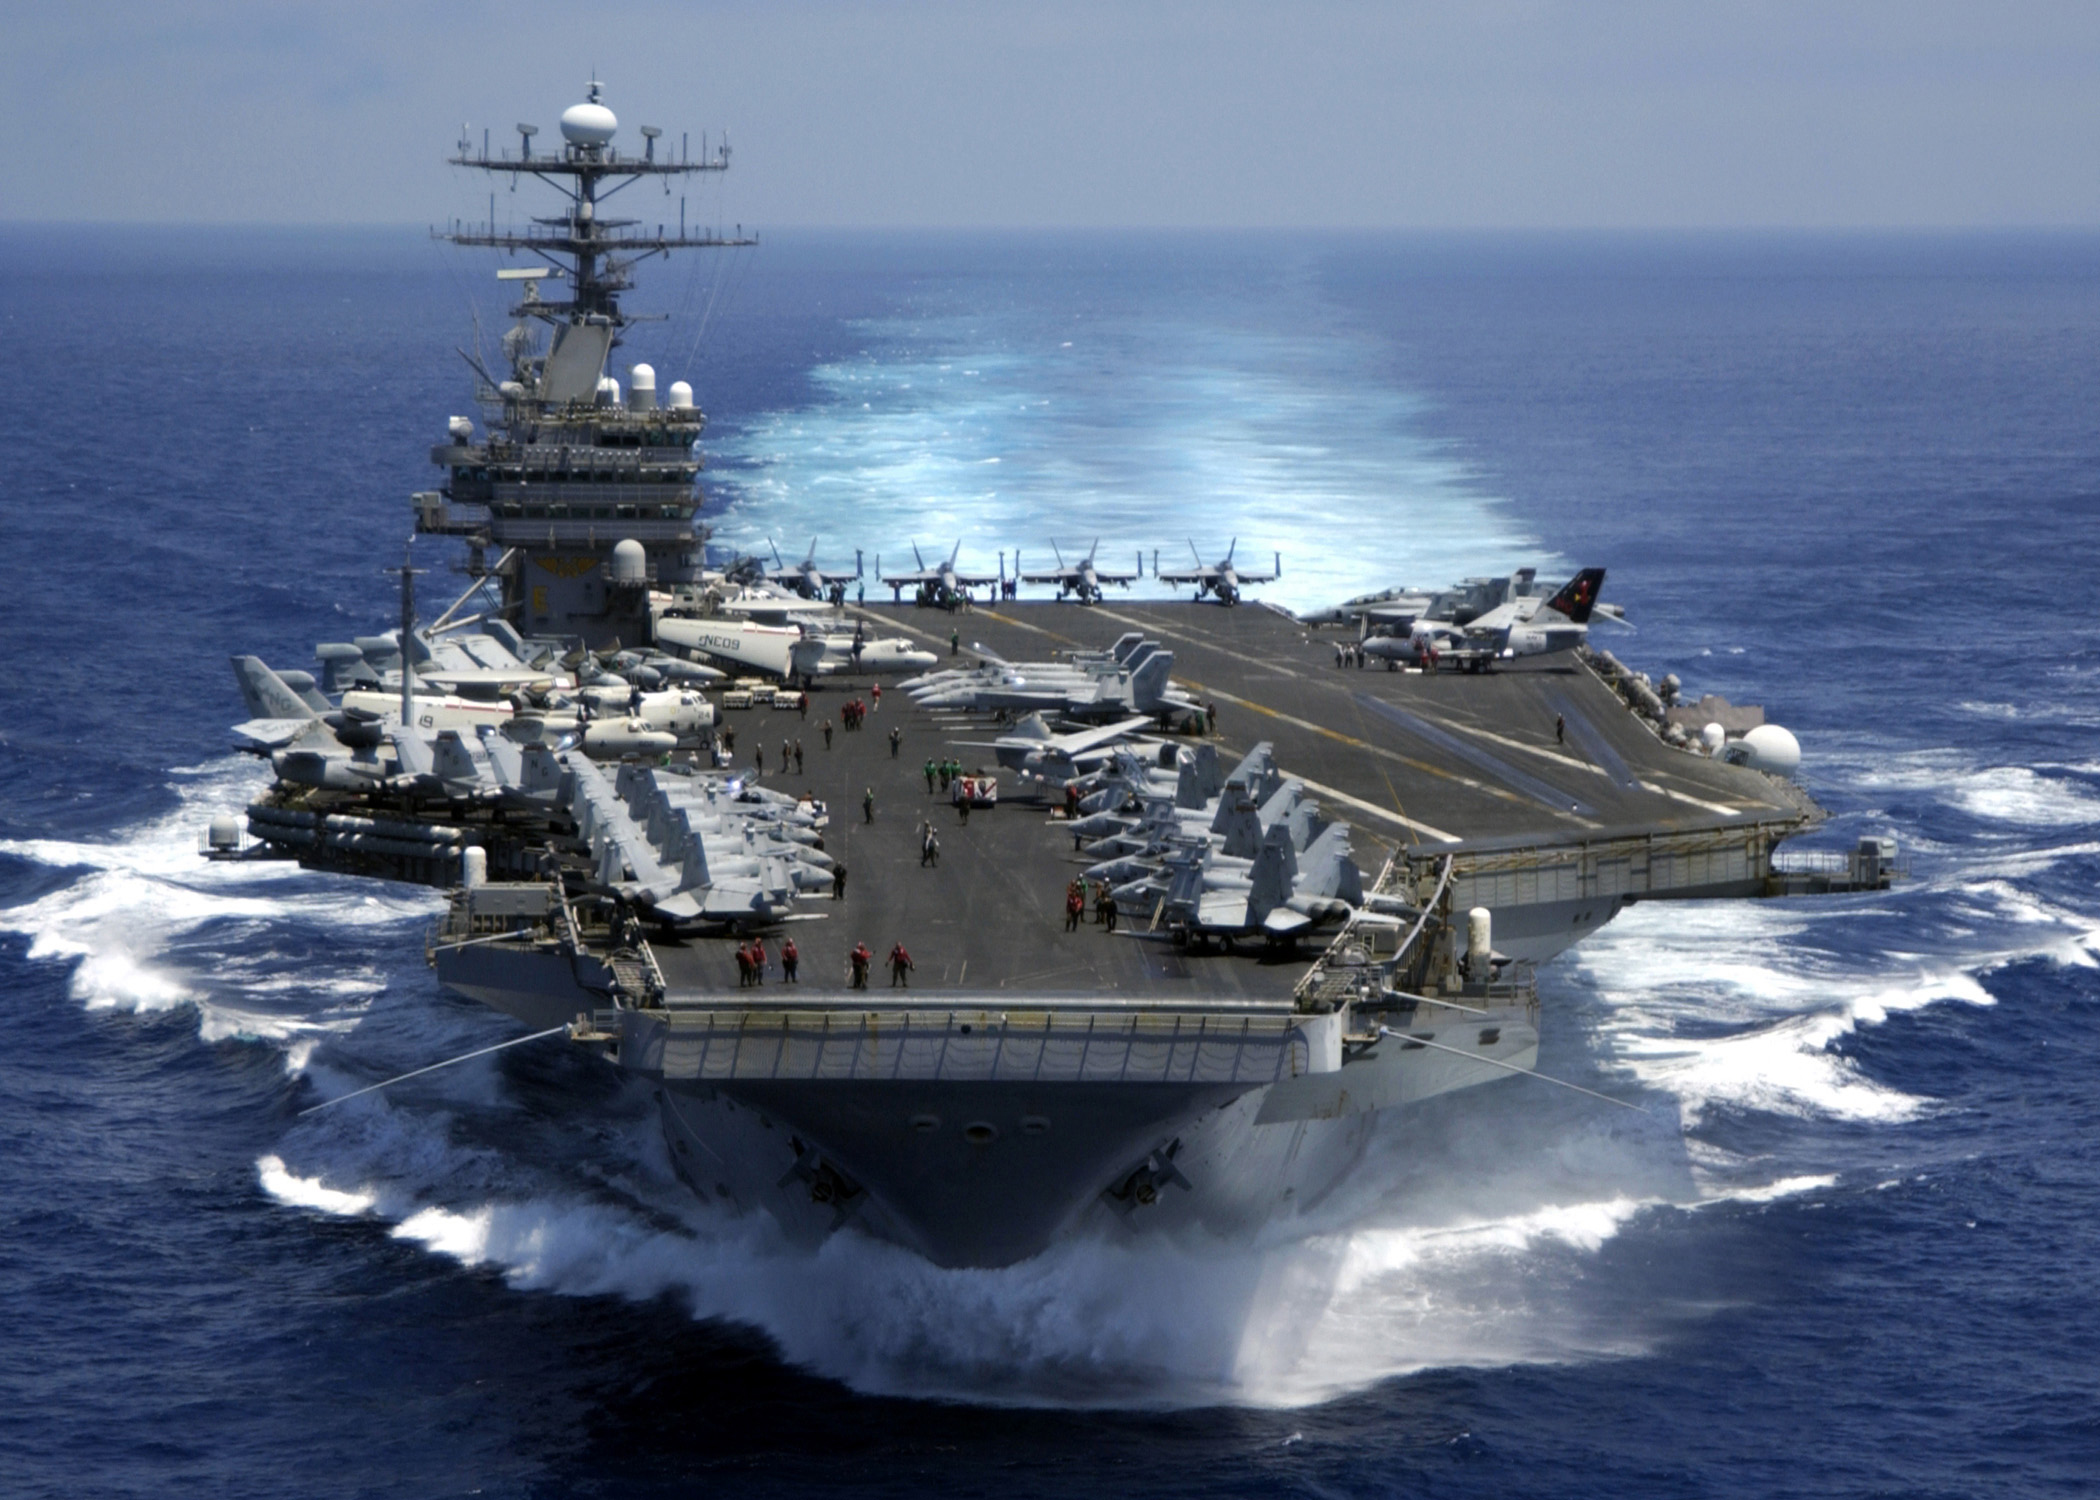 US sailor hit, injured by towed aircraft on USS Carl Vinson flight deck Featured